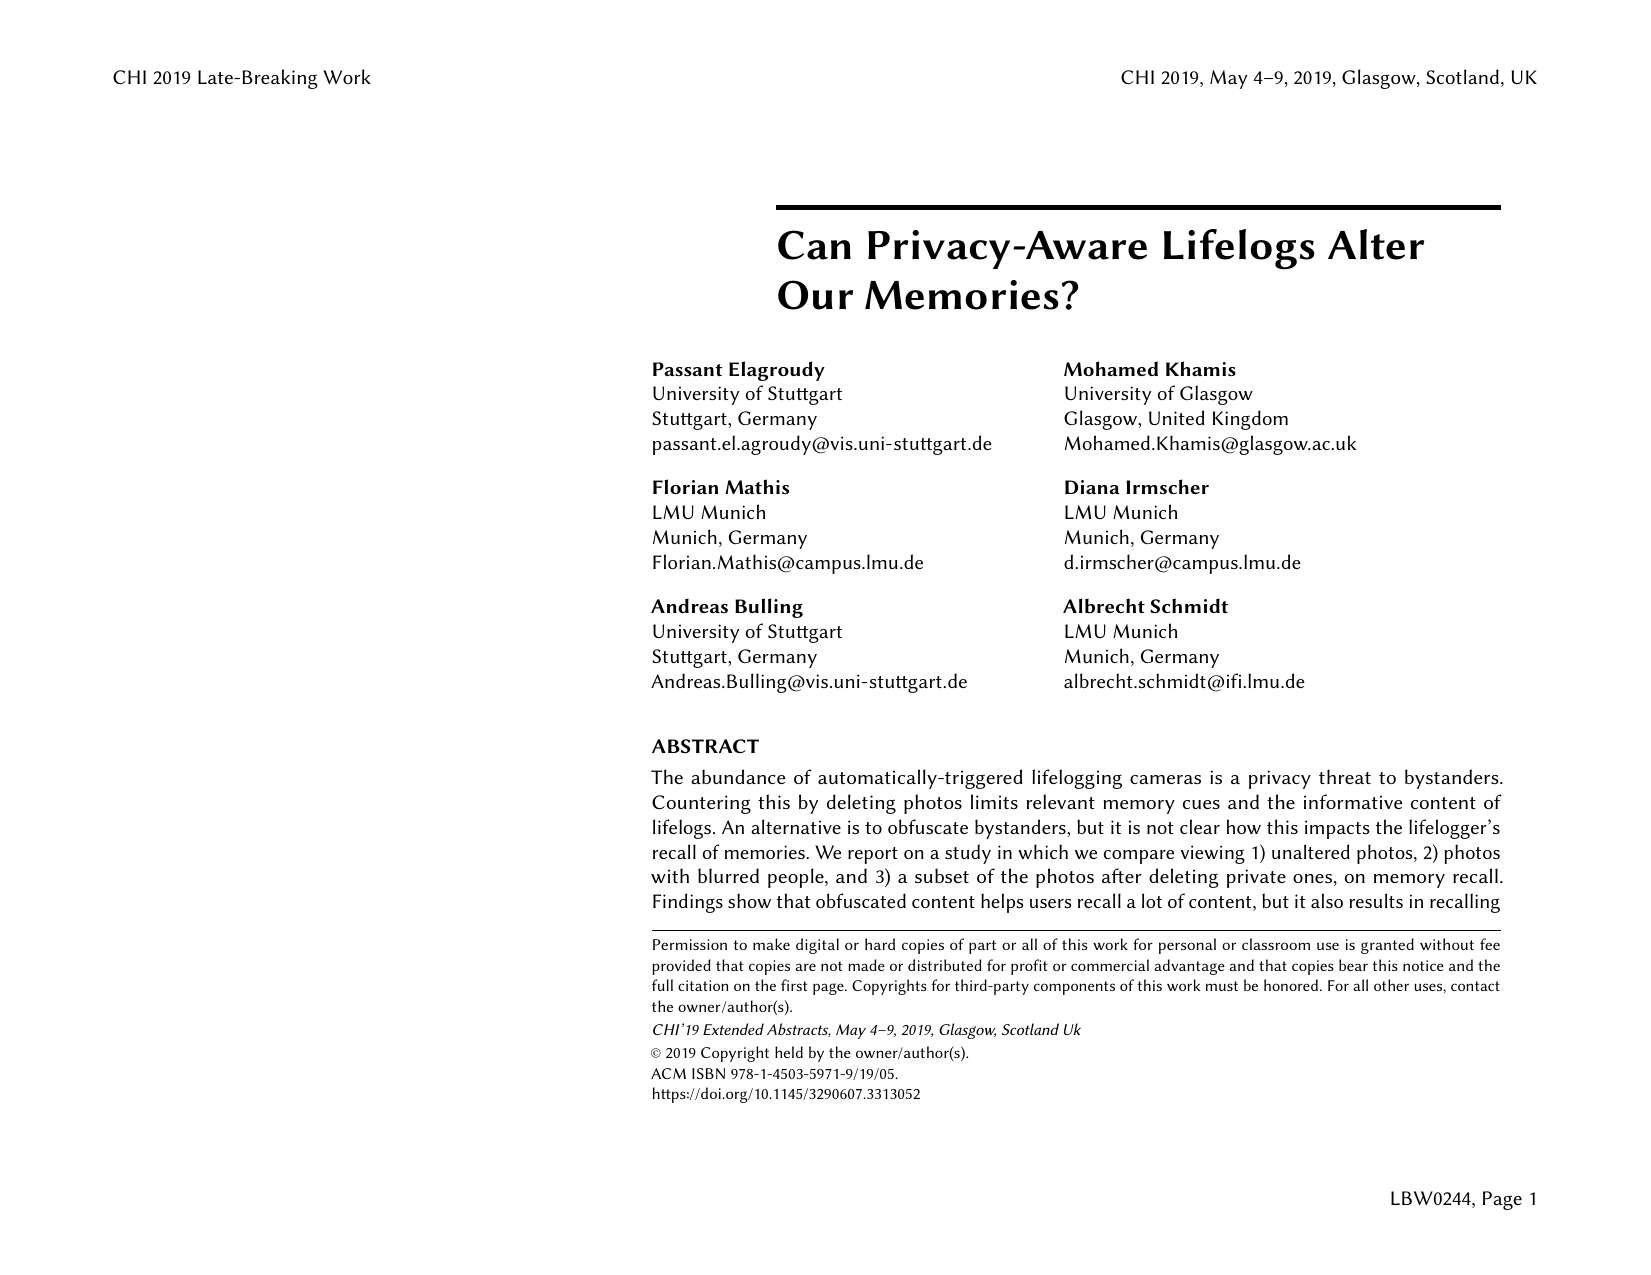 Can Privacy-Aware Lifelogs Alter Our Memories?